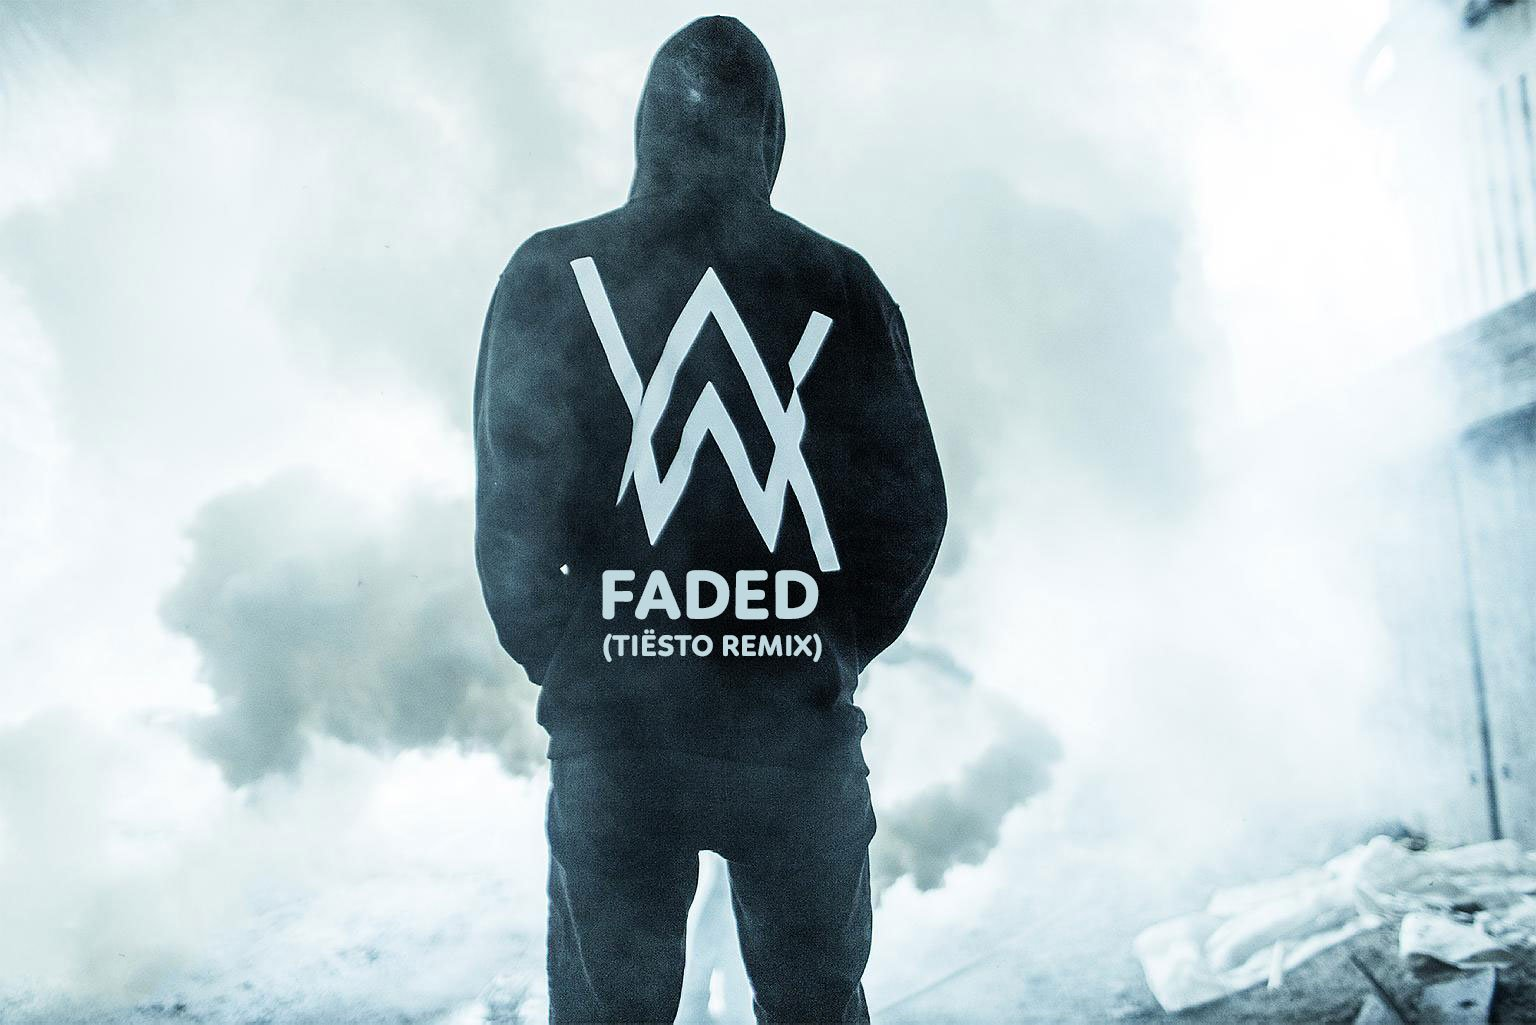 alan walker faded tiesto remix artwork